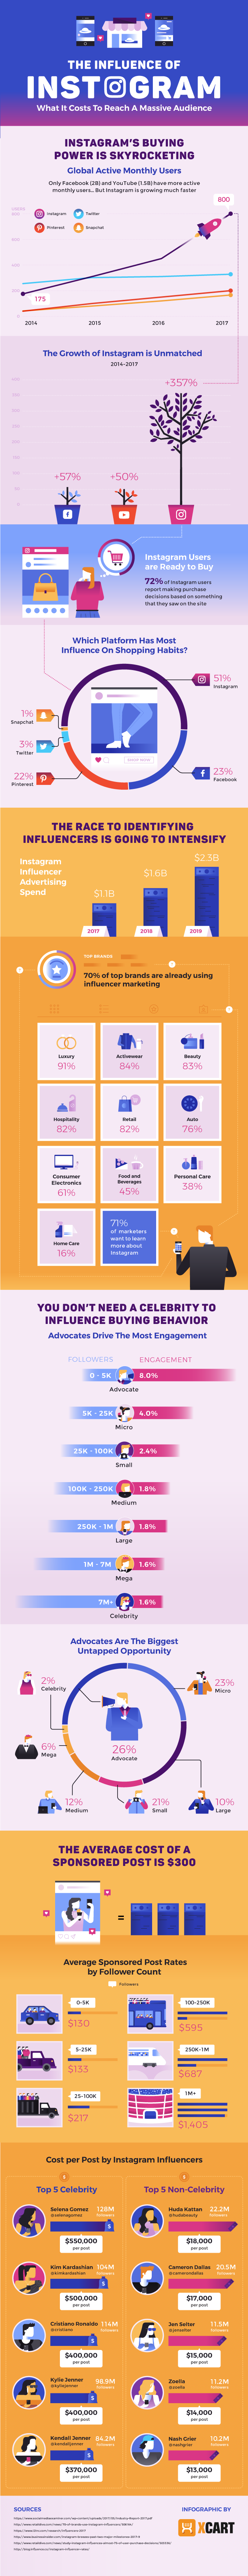 Instagram Marketing For e-Commerce: The Complete Guide #infographic